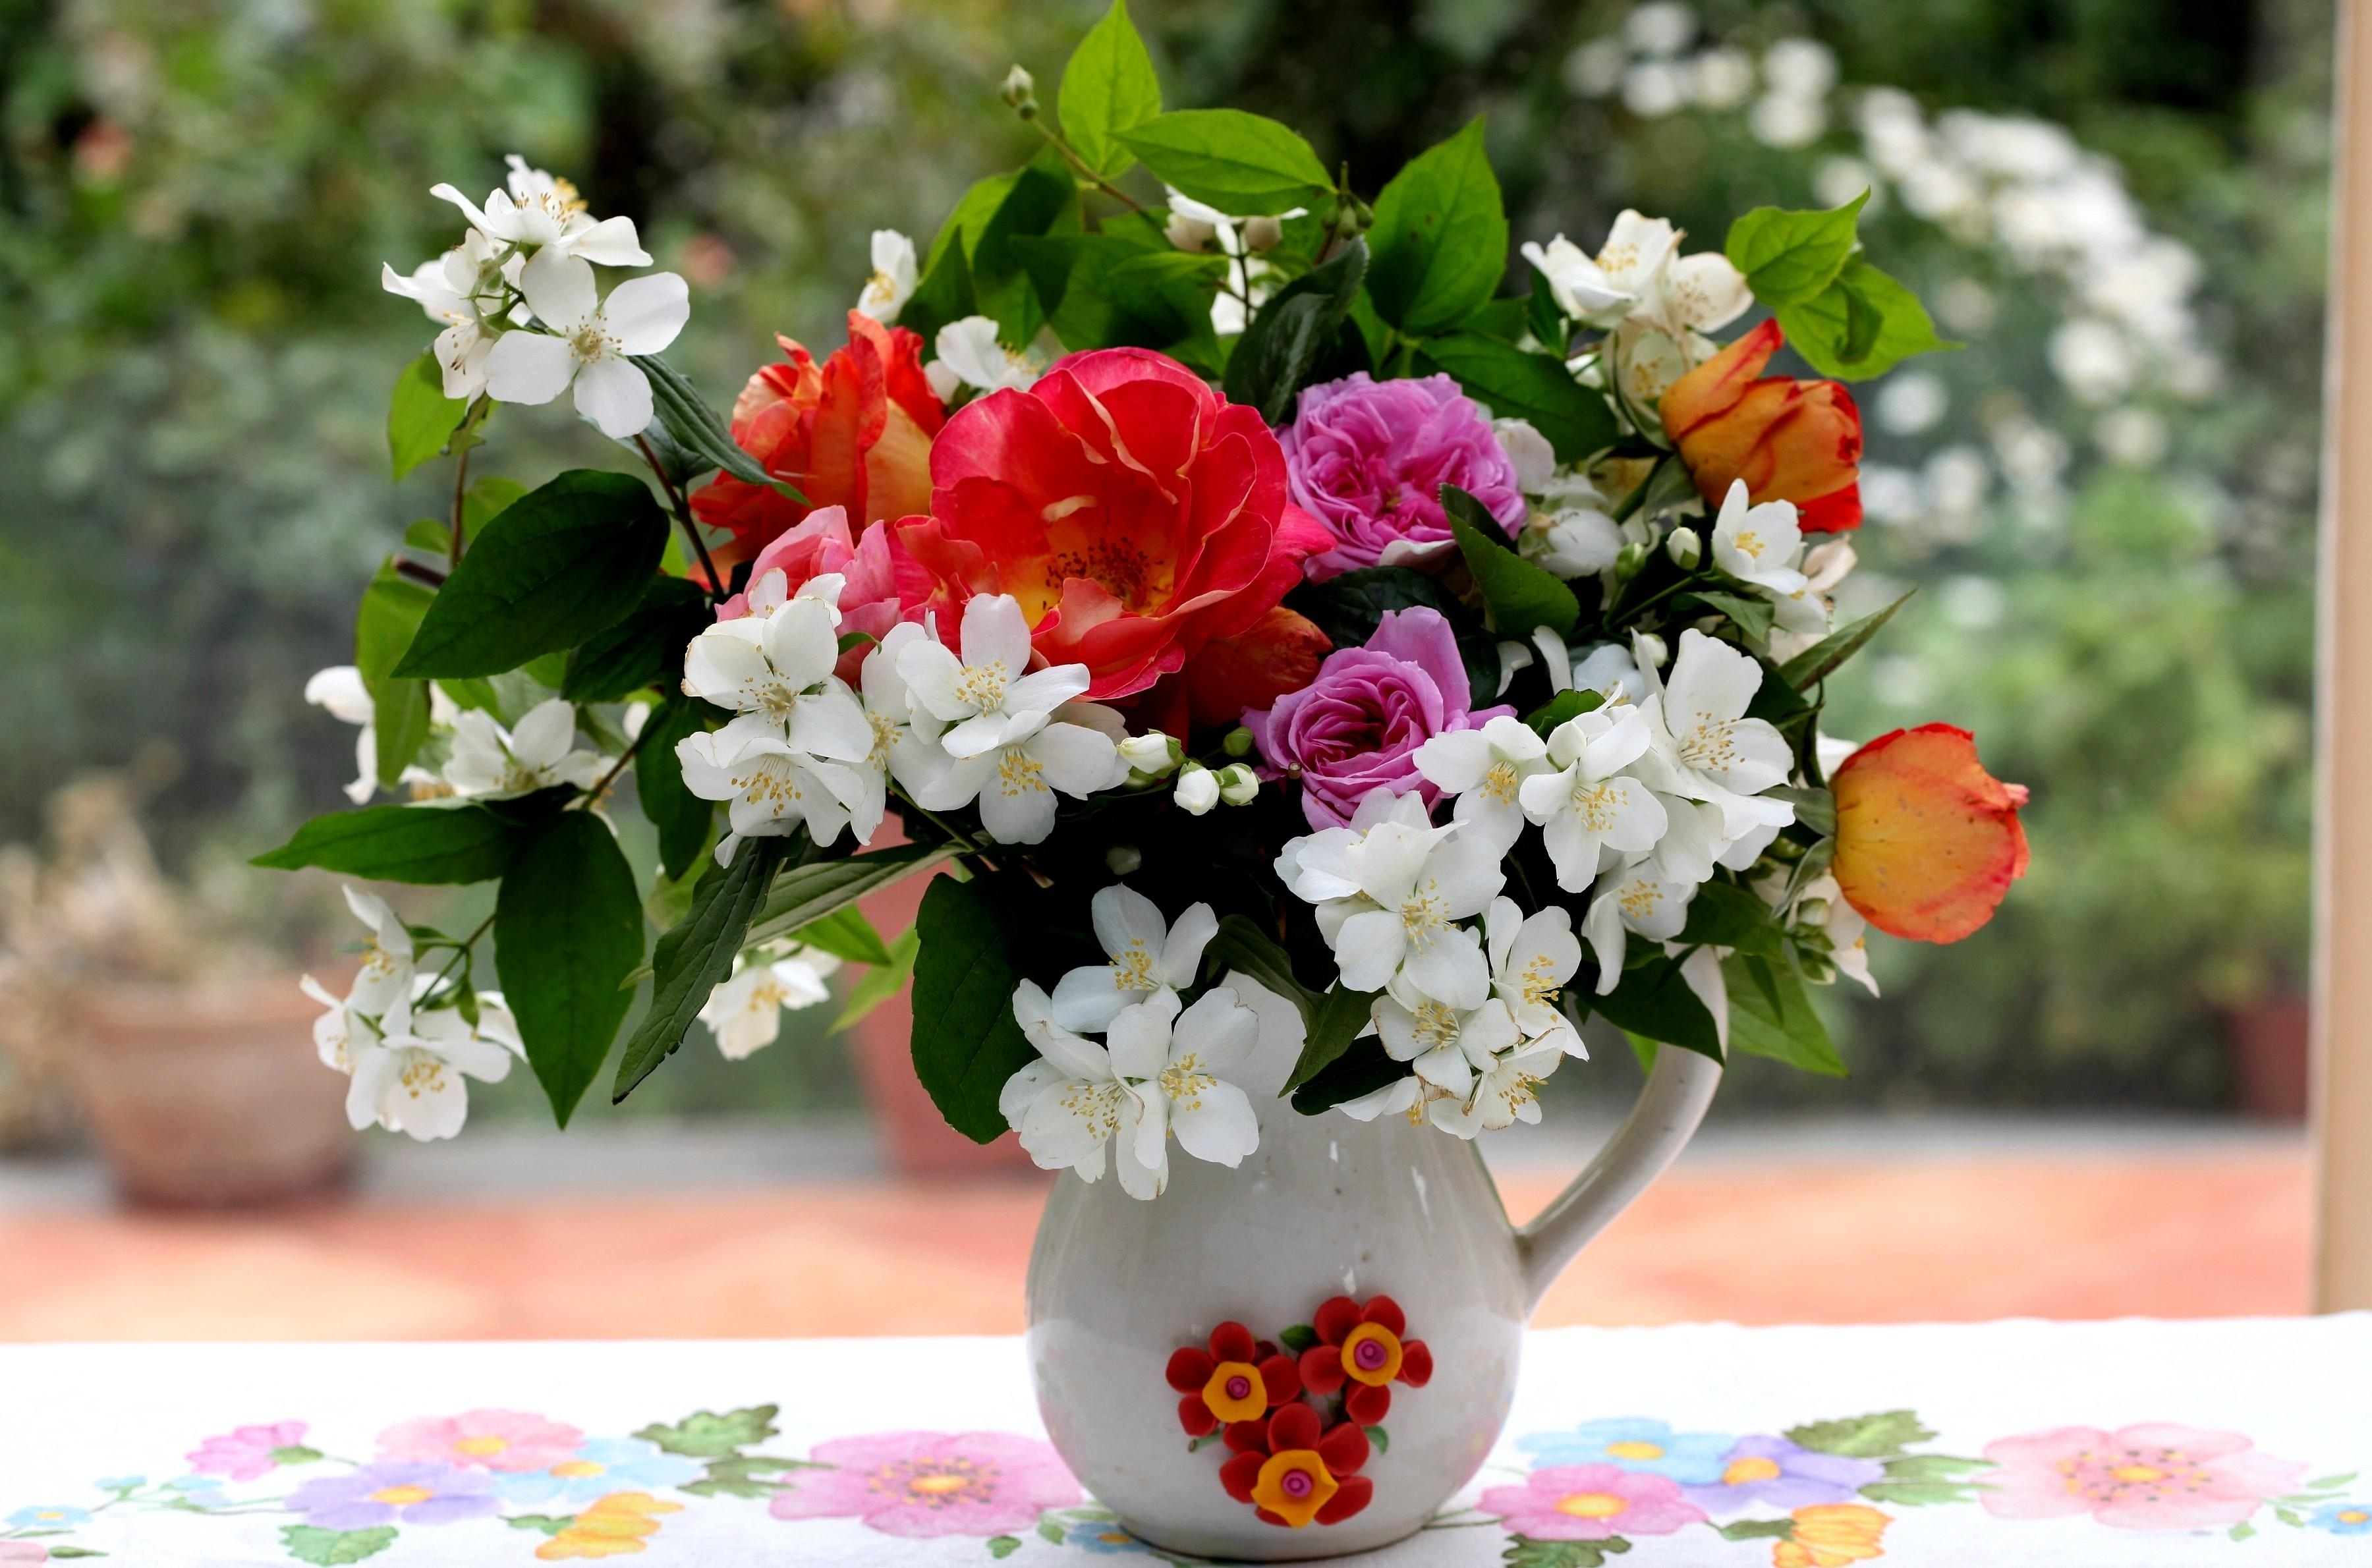 84550 download wallpaper Flowers, Roses, Leaves, Branches, Bouquet, Jug, Table, Jasmine screensavers and pictures for free